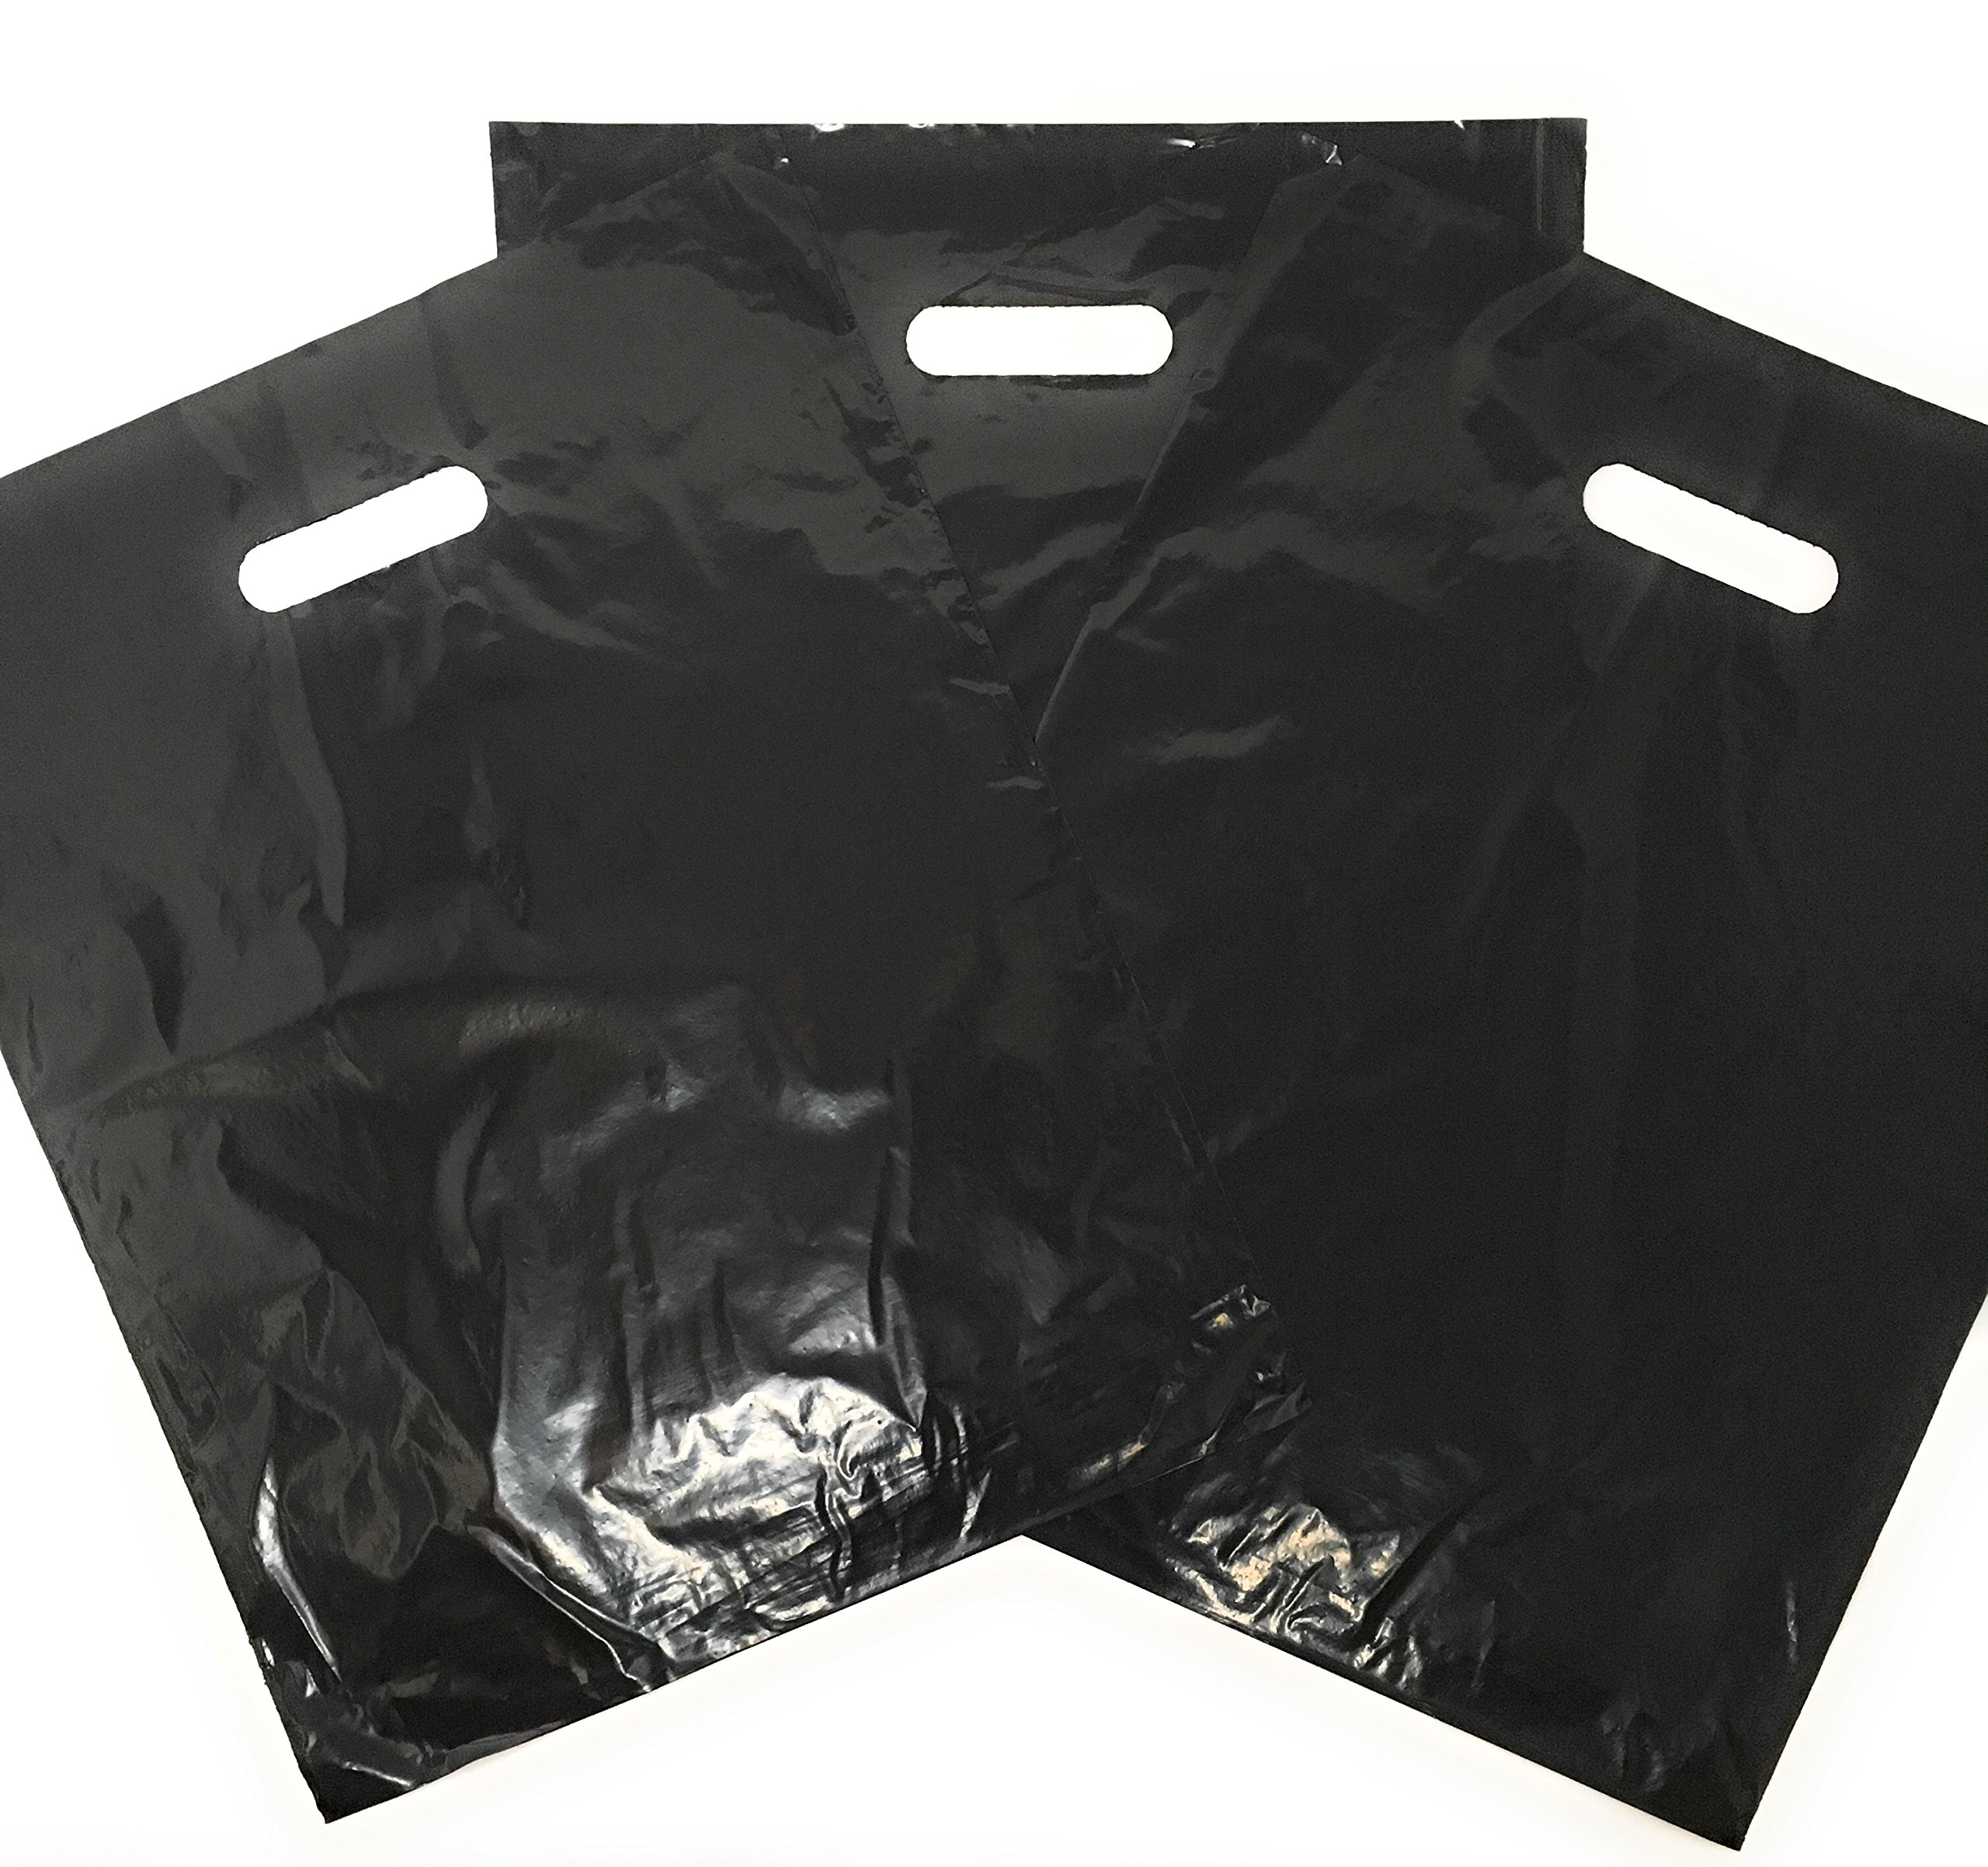 100 Pack 12'' x 15'' with 1.25 mil Thick Black Merchandise Plastic Glossy Retail Bags | Die Cut Handles | Perfect for Shopping, Party Favors, Birthdays, Children Parties | Color Black | 100% Recyclable